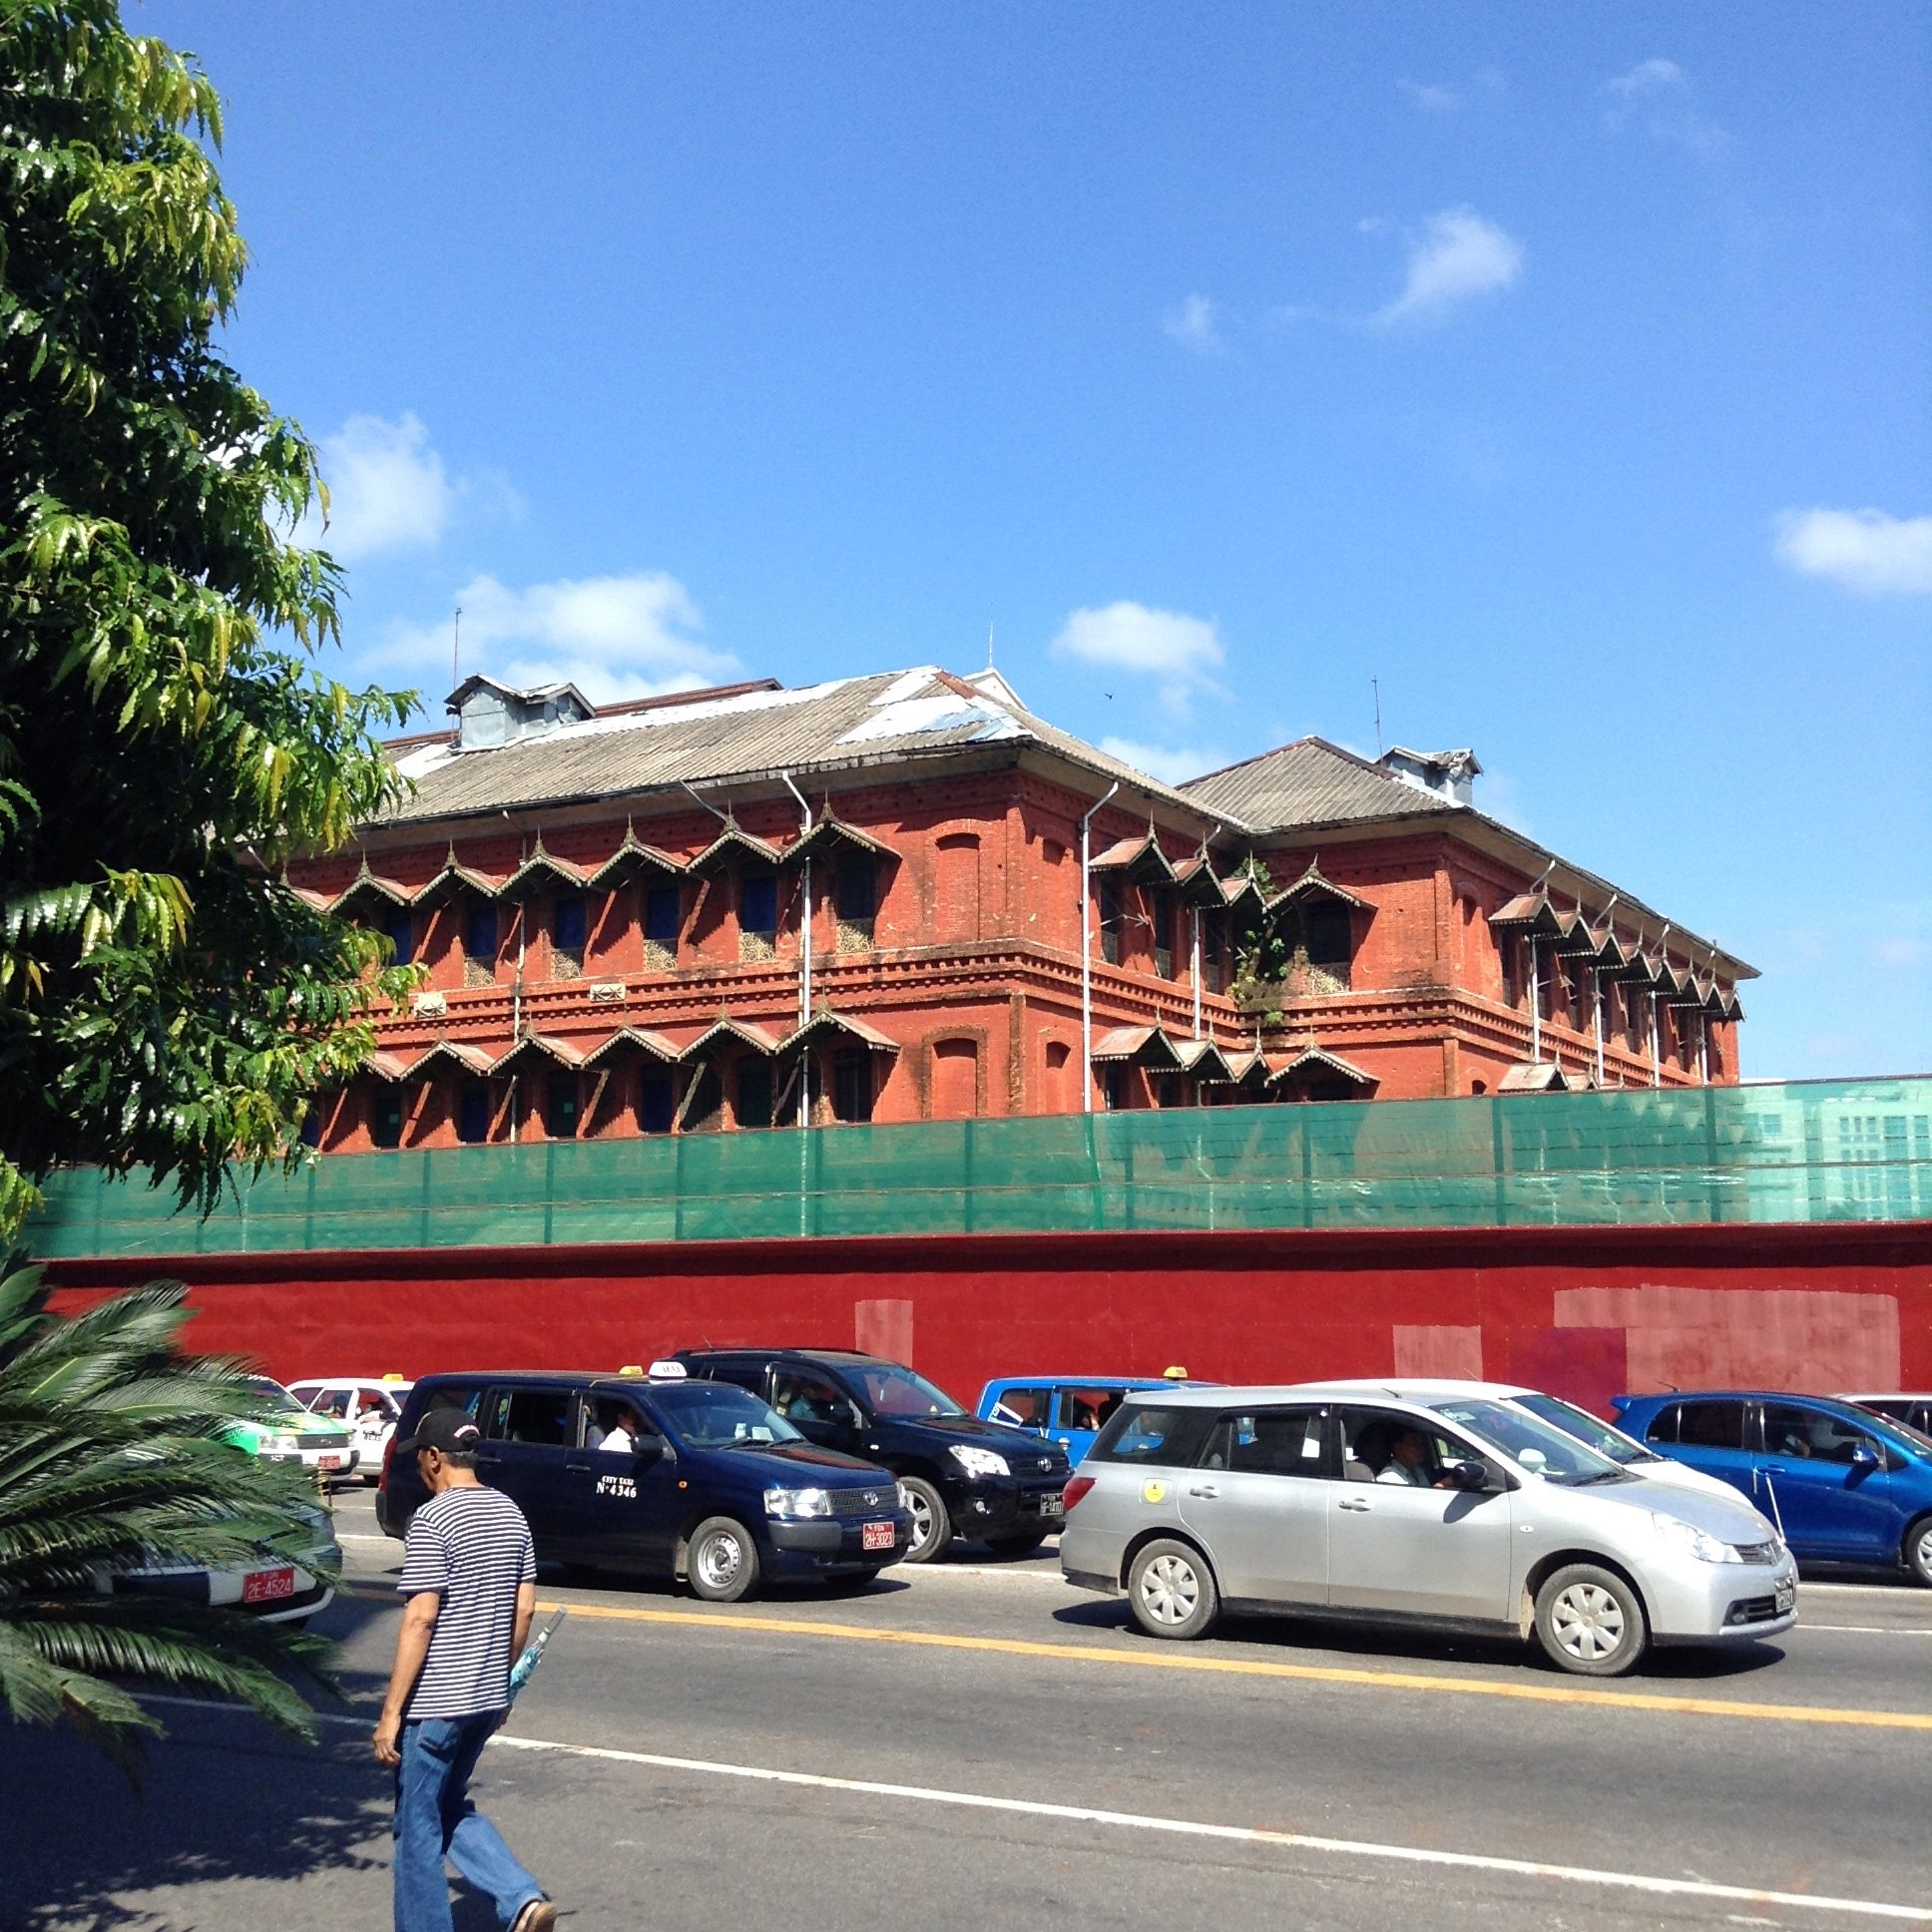 Some grand architecture in Yangon. (With images) | House ...